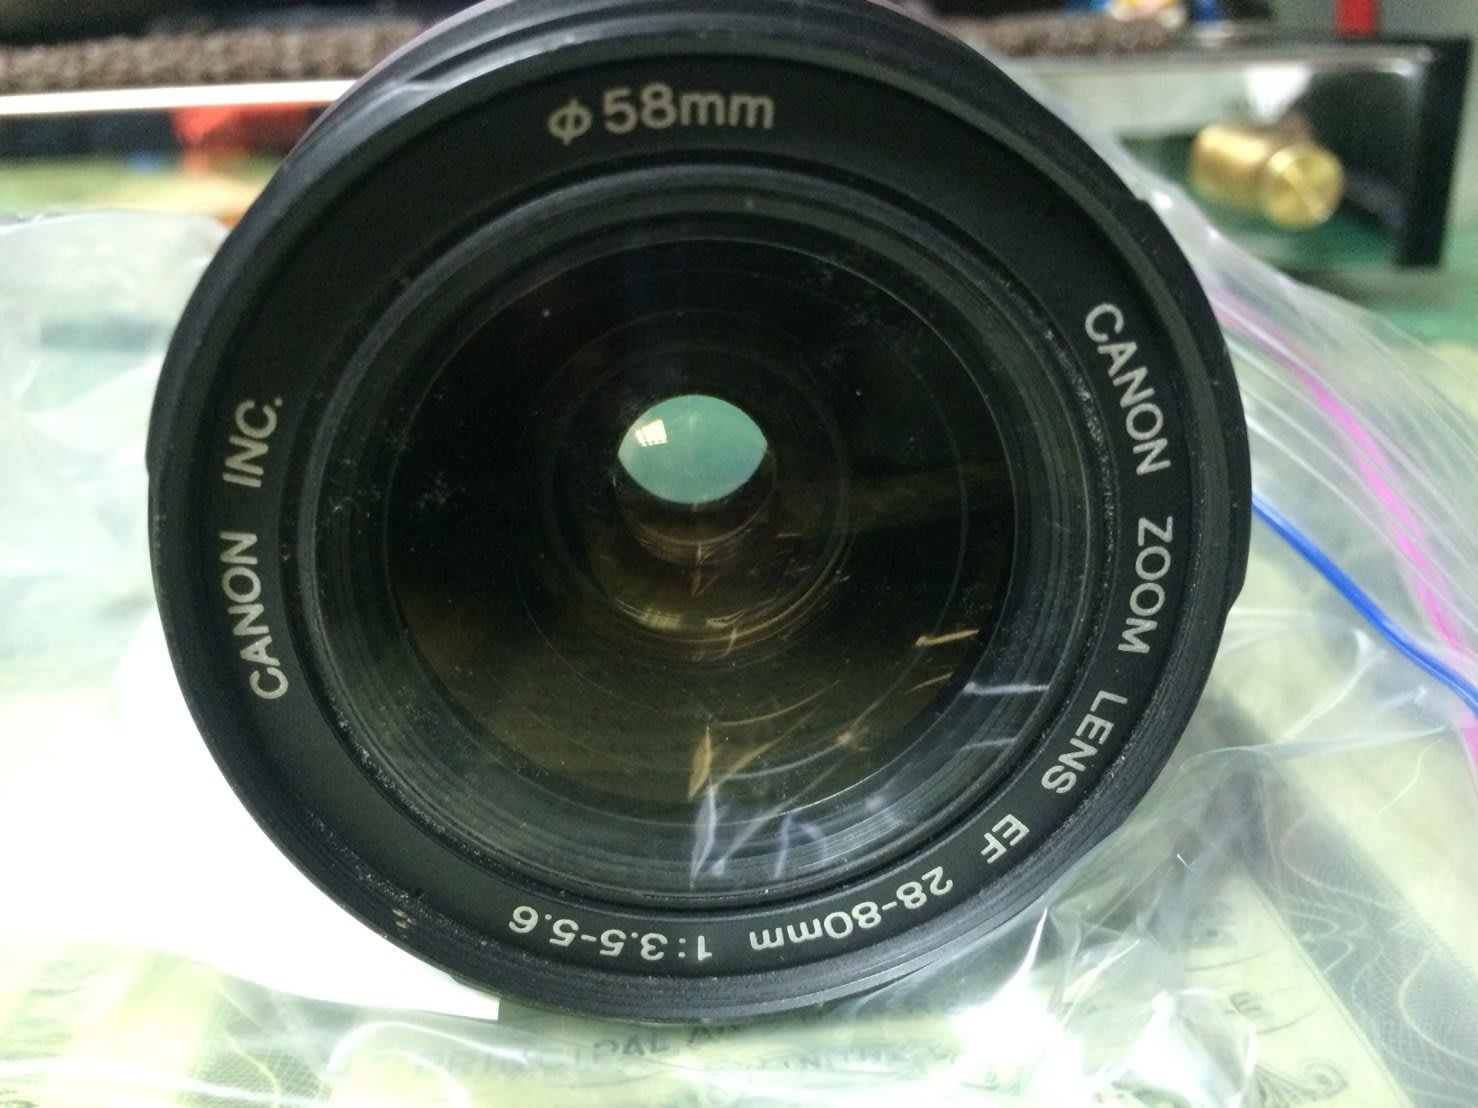 Canon ZOOM LENS EF 28-80 mm 1:3.5-5.5 單眼 鏡頭 58mm